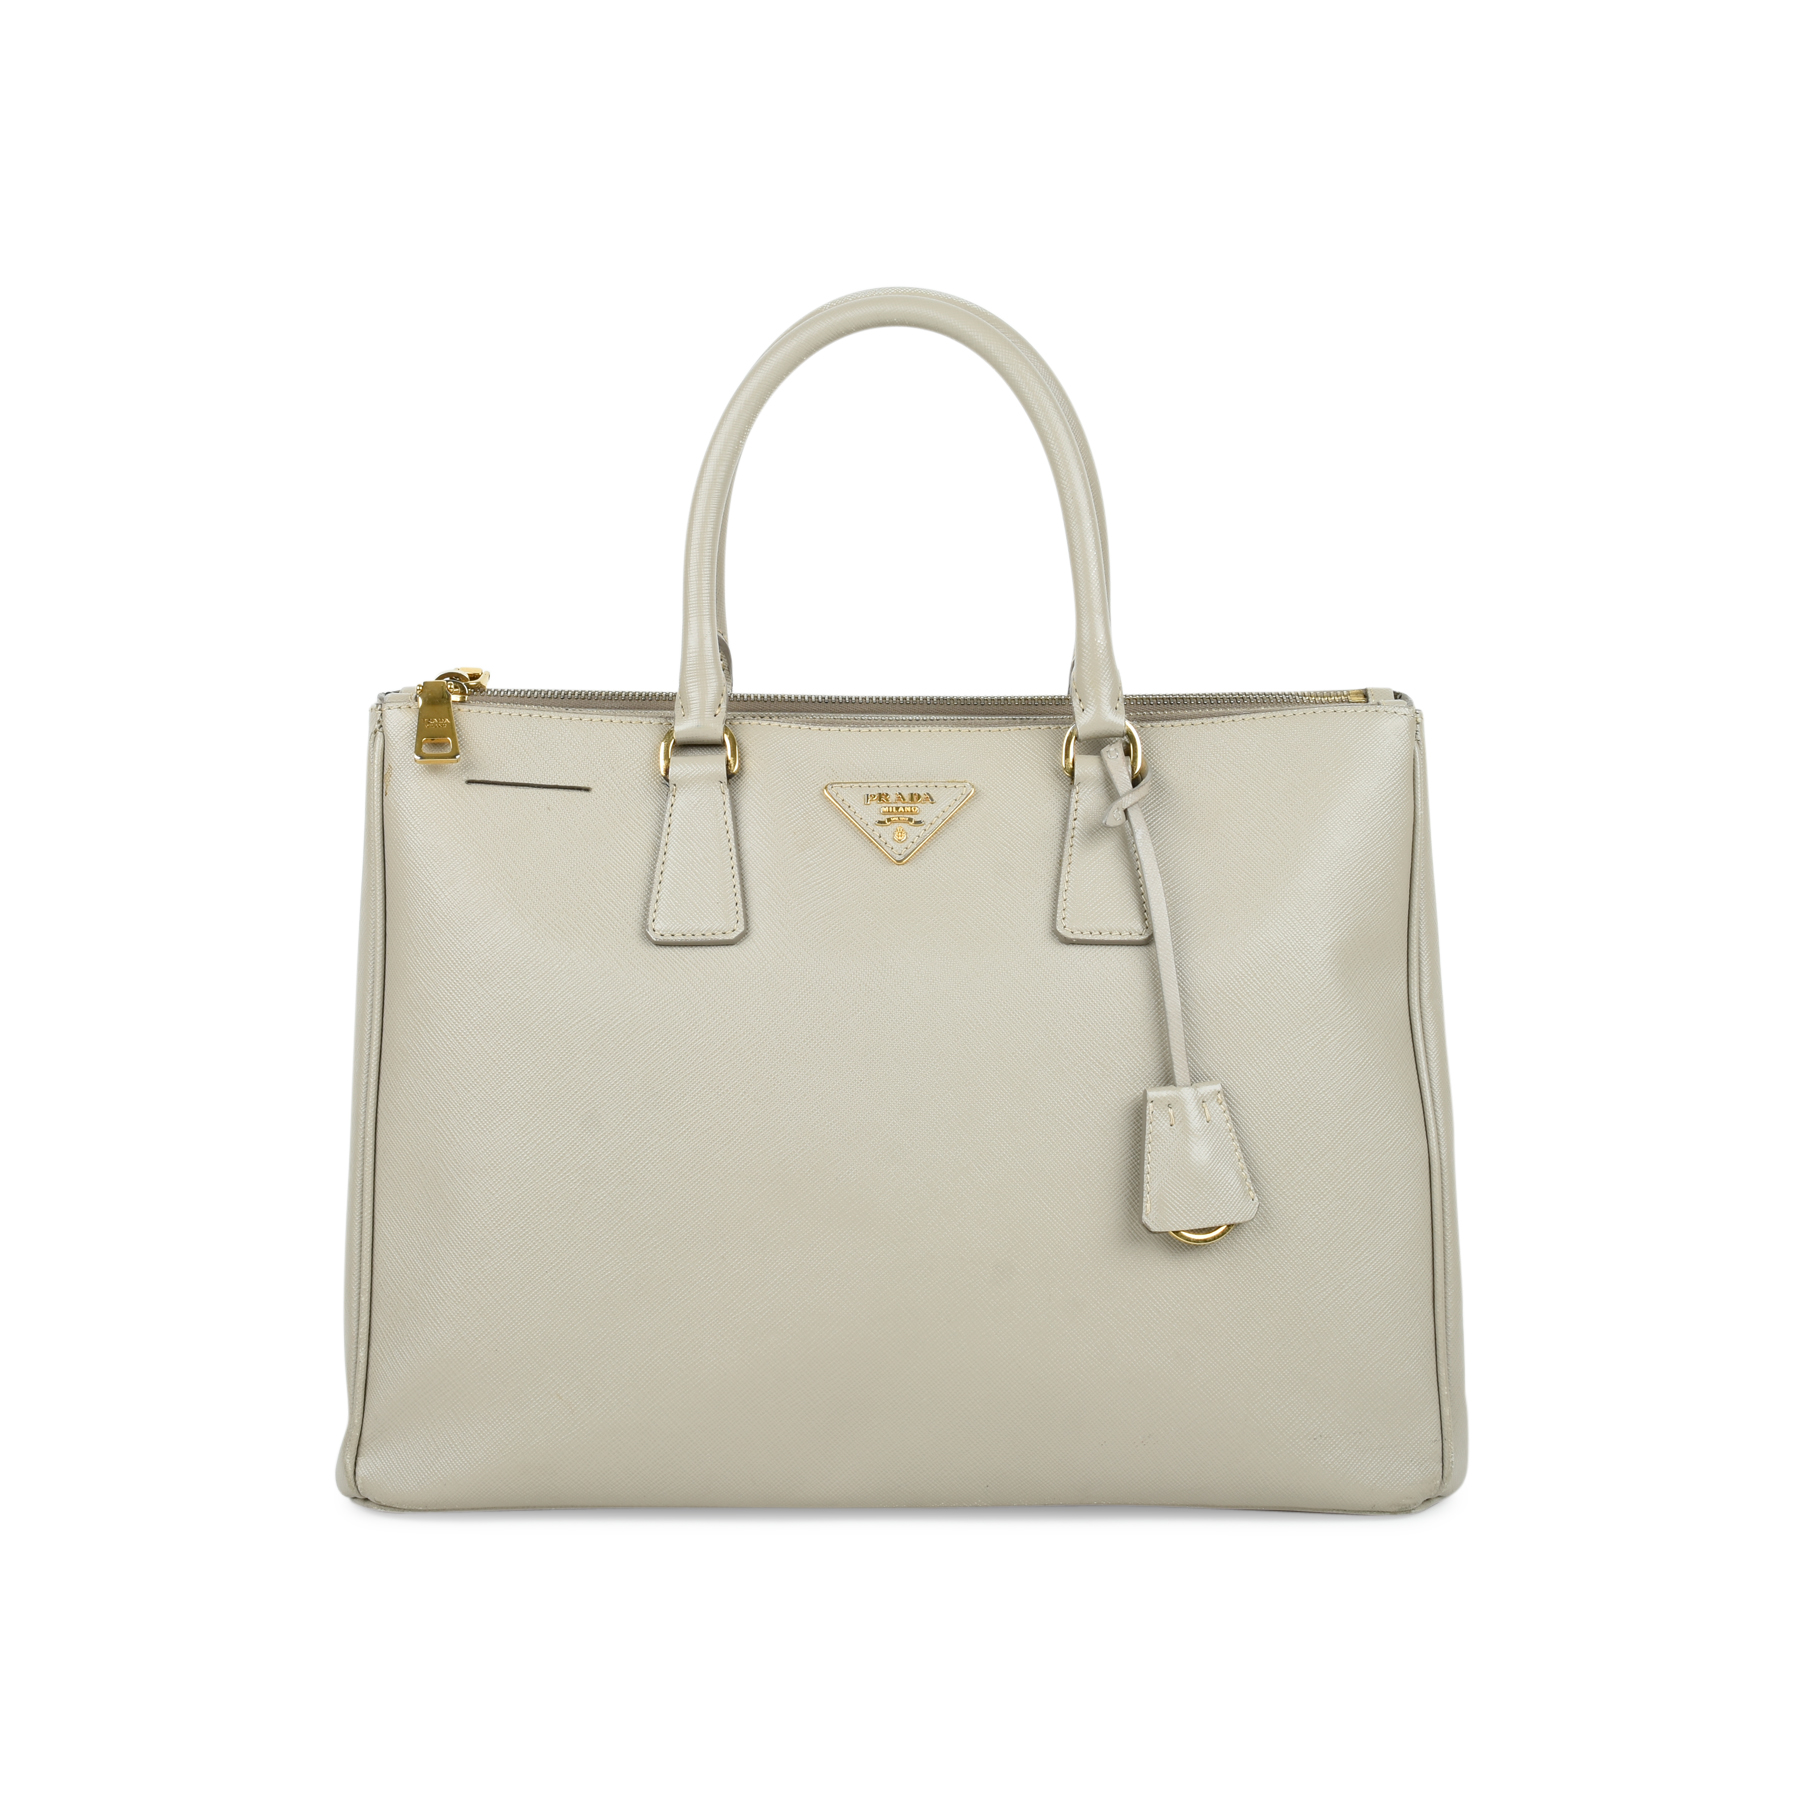 4563ceb13aac Authentic Second Hand Prada Saffiano Lux Double Zip Tote (PSS-494-00002) |  THE FIFTH COLLECTION